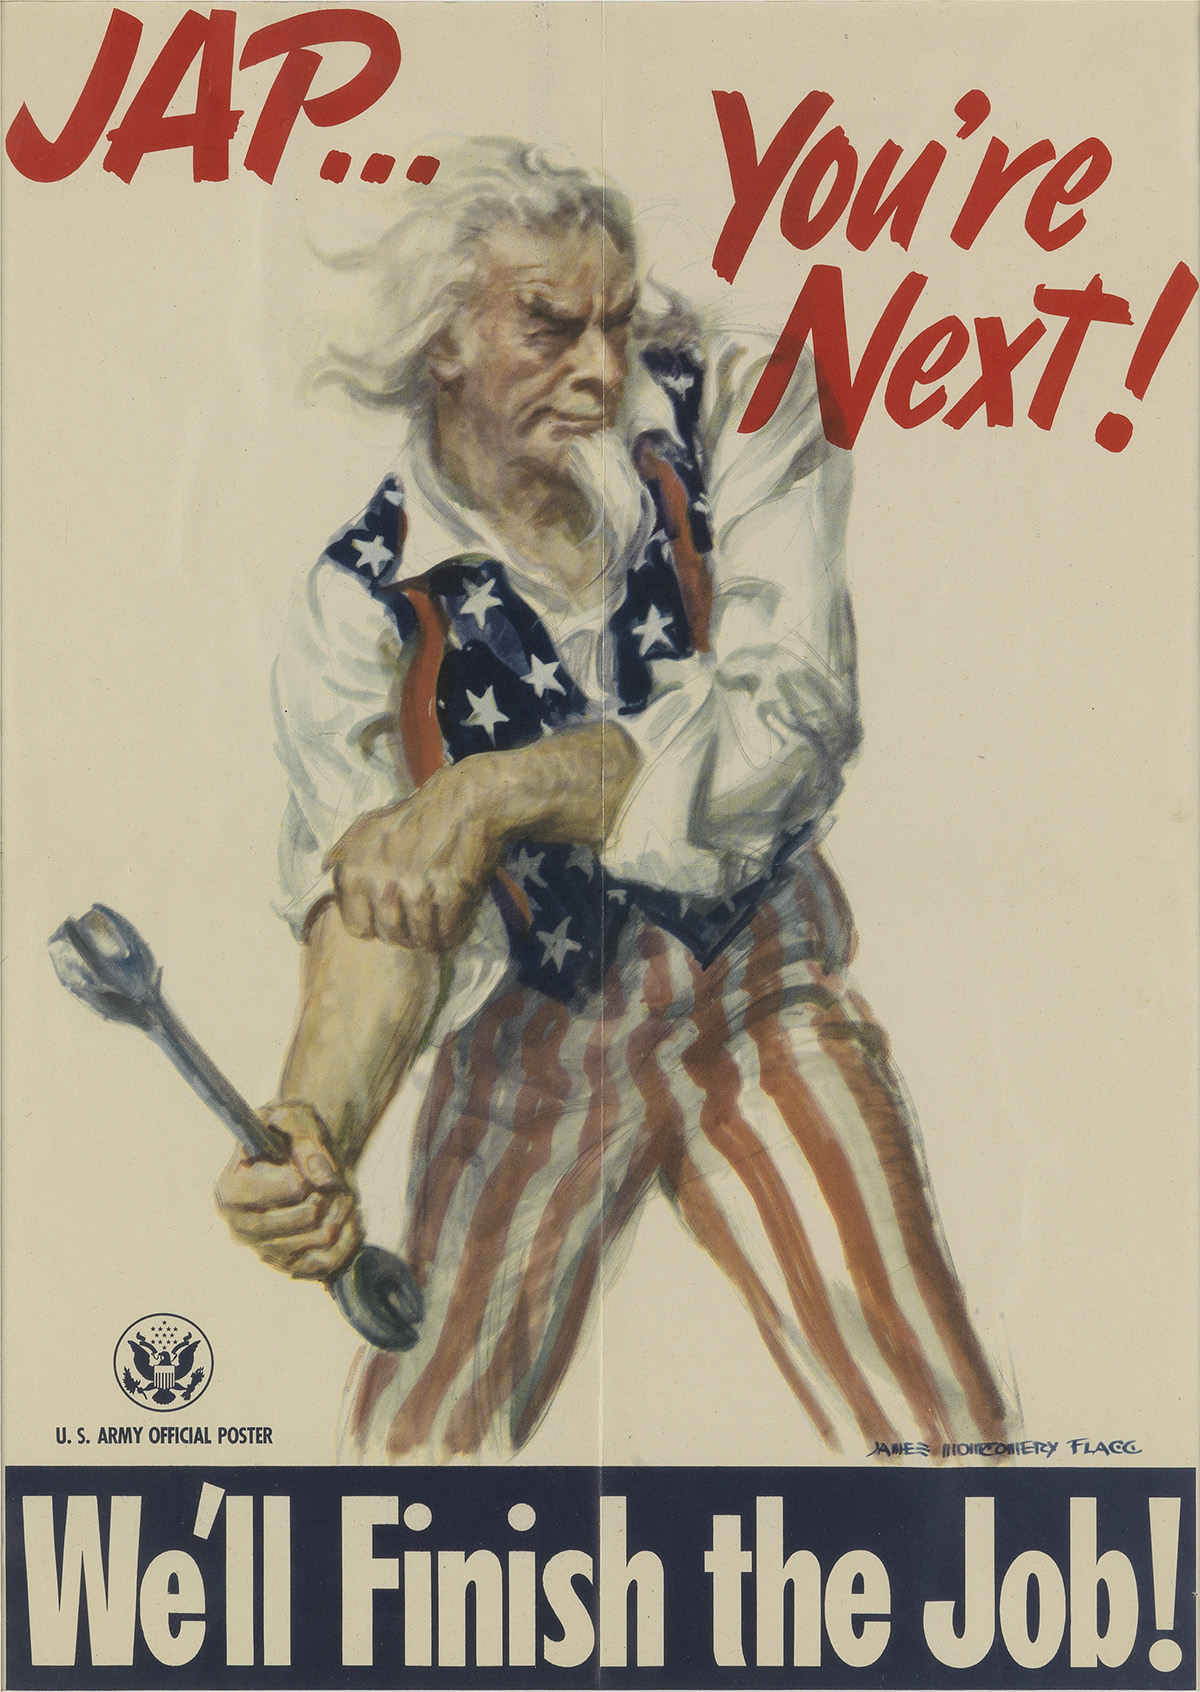 JAMES-MONTGOMERY-FLAGG-(1870-1960)-JAP----YOURE-NEXT--WELL-F